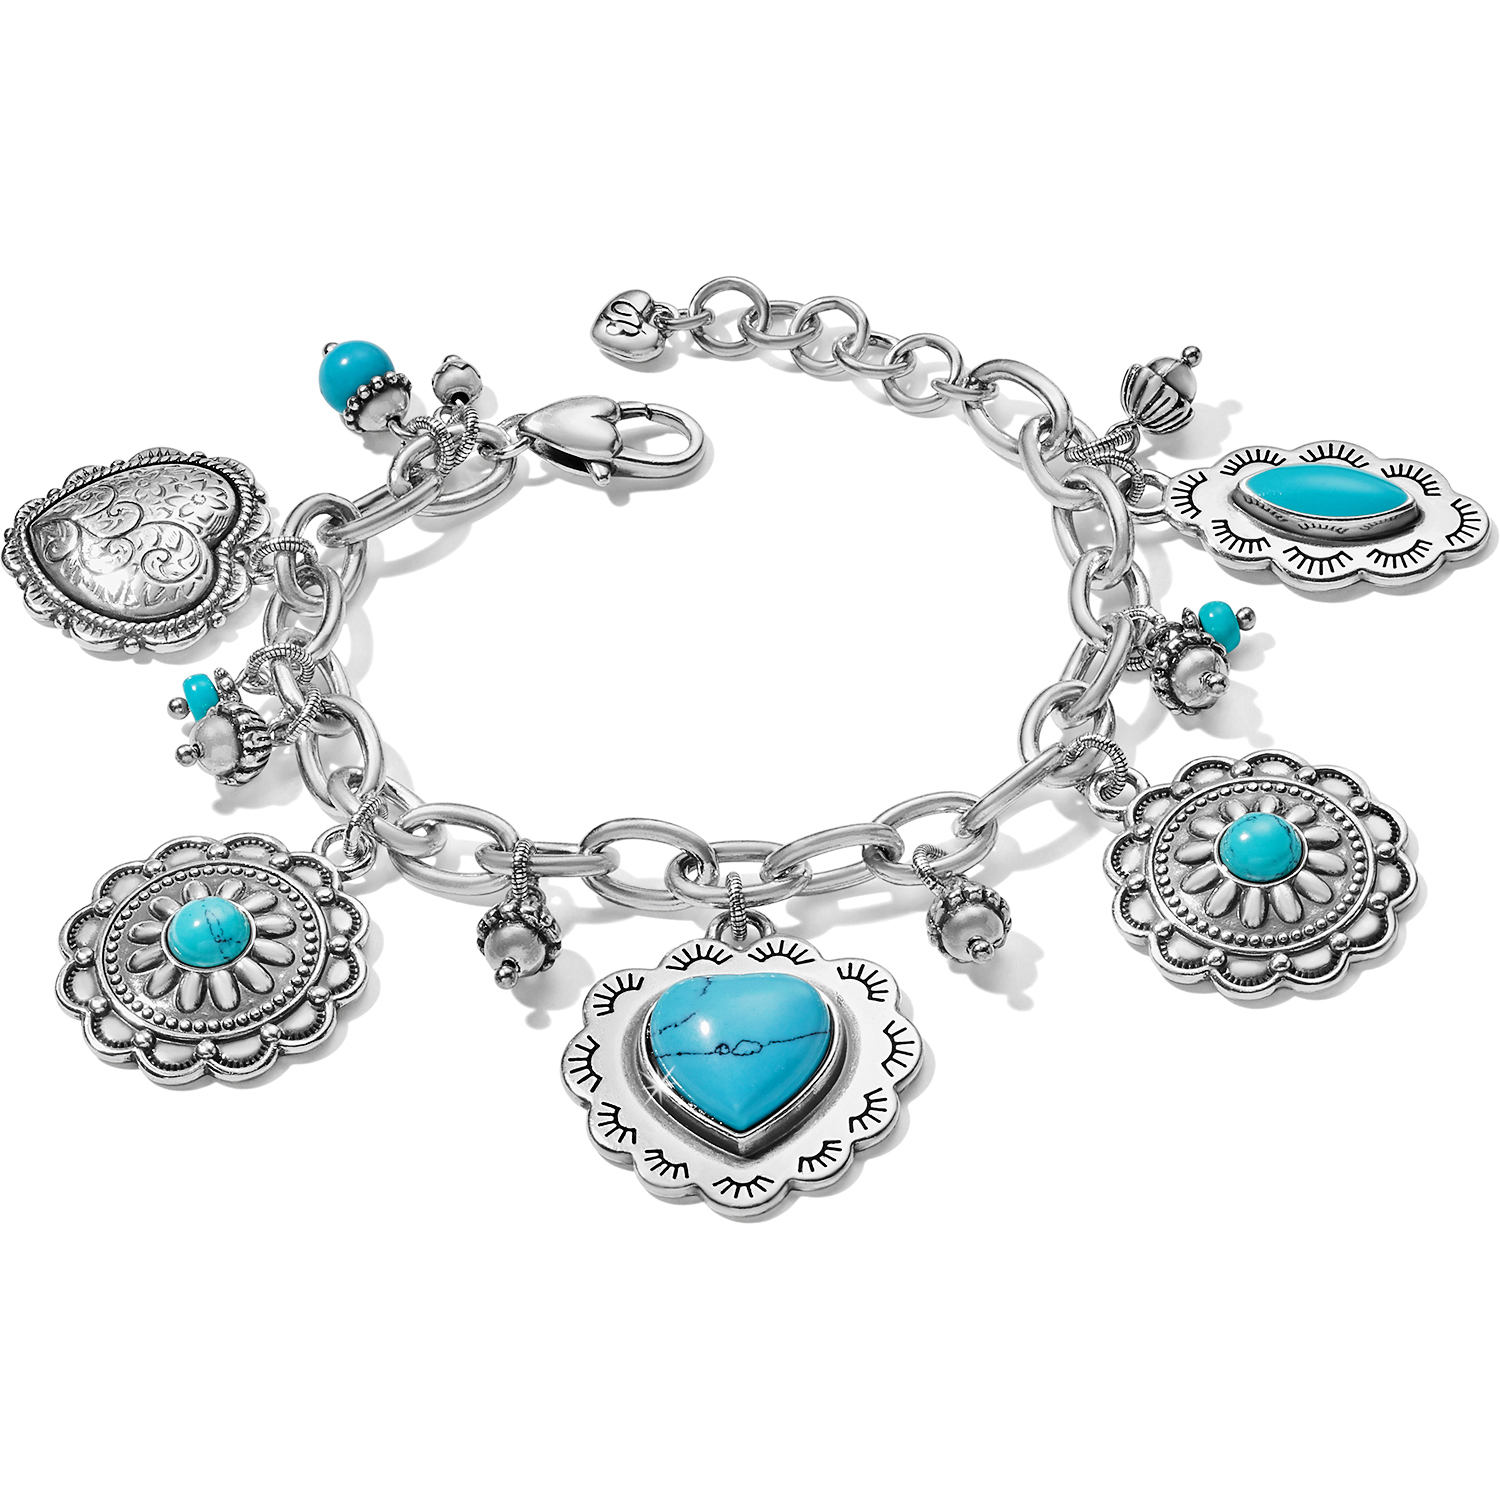 Southwest Dream Spirit Bracelet from Brighton